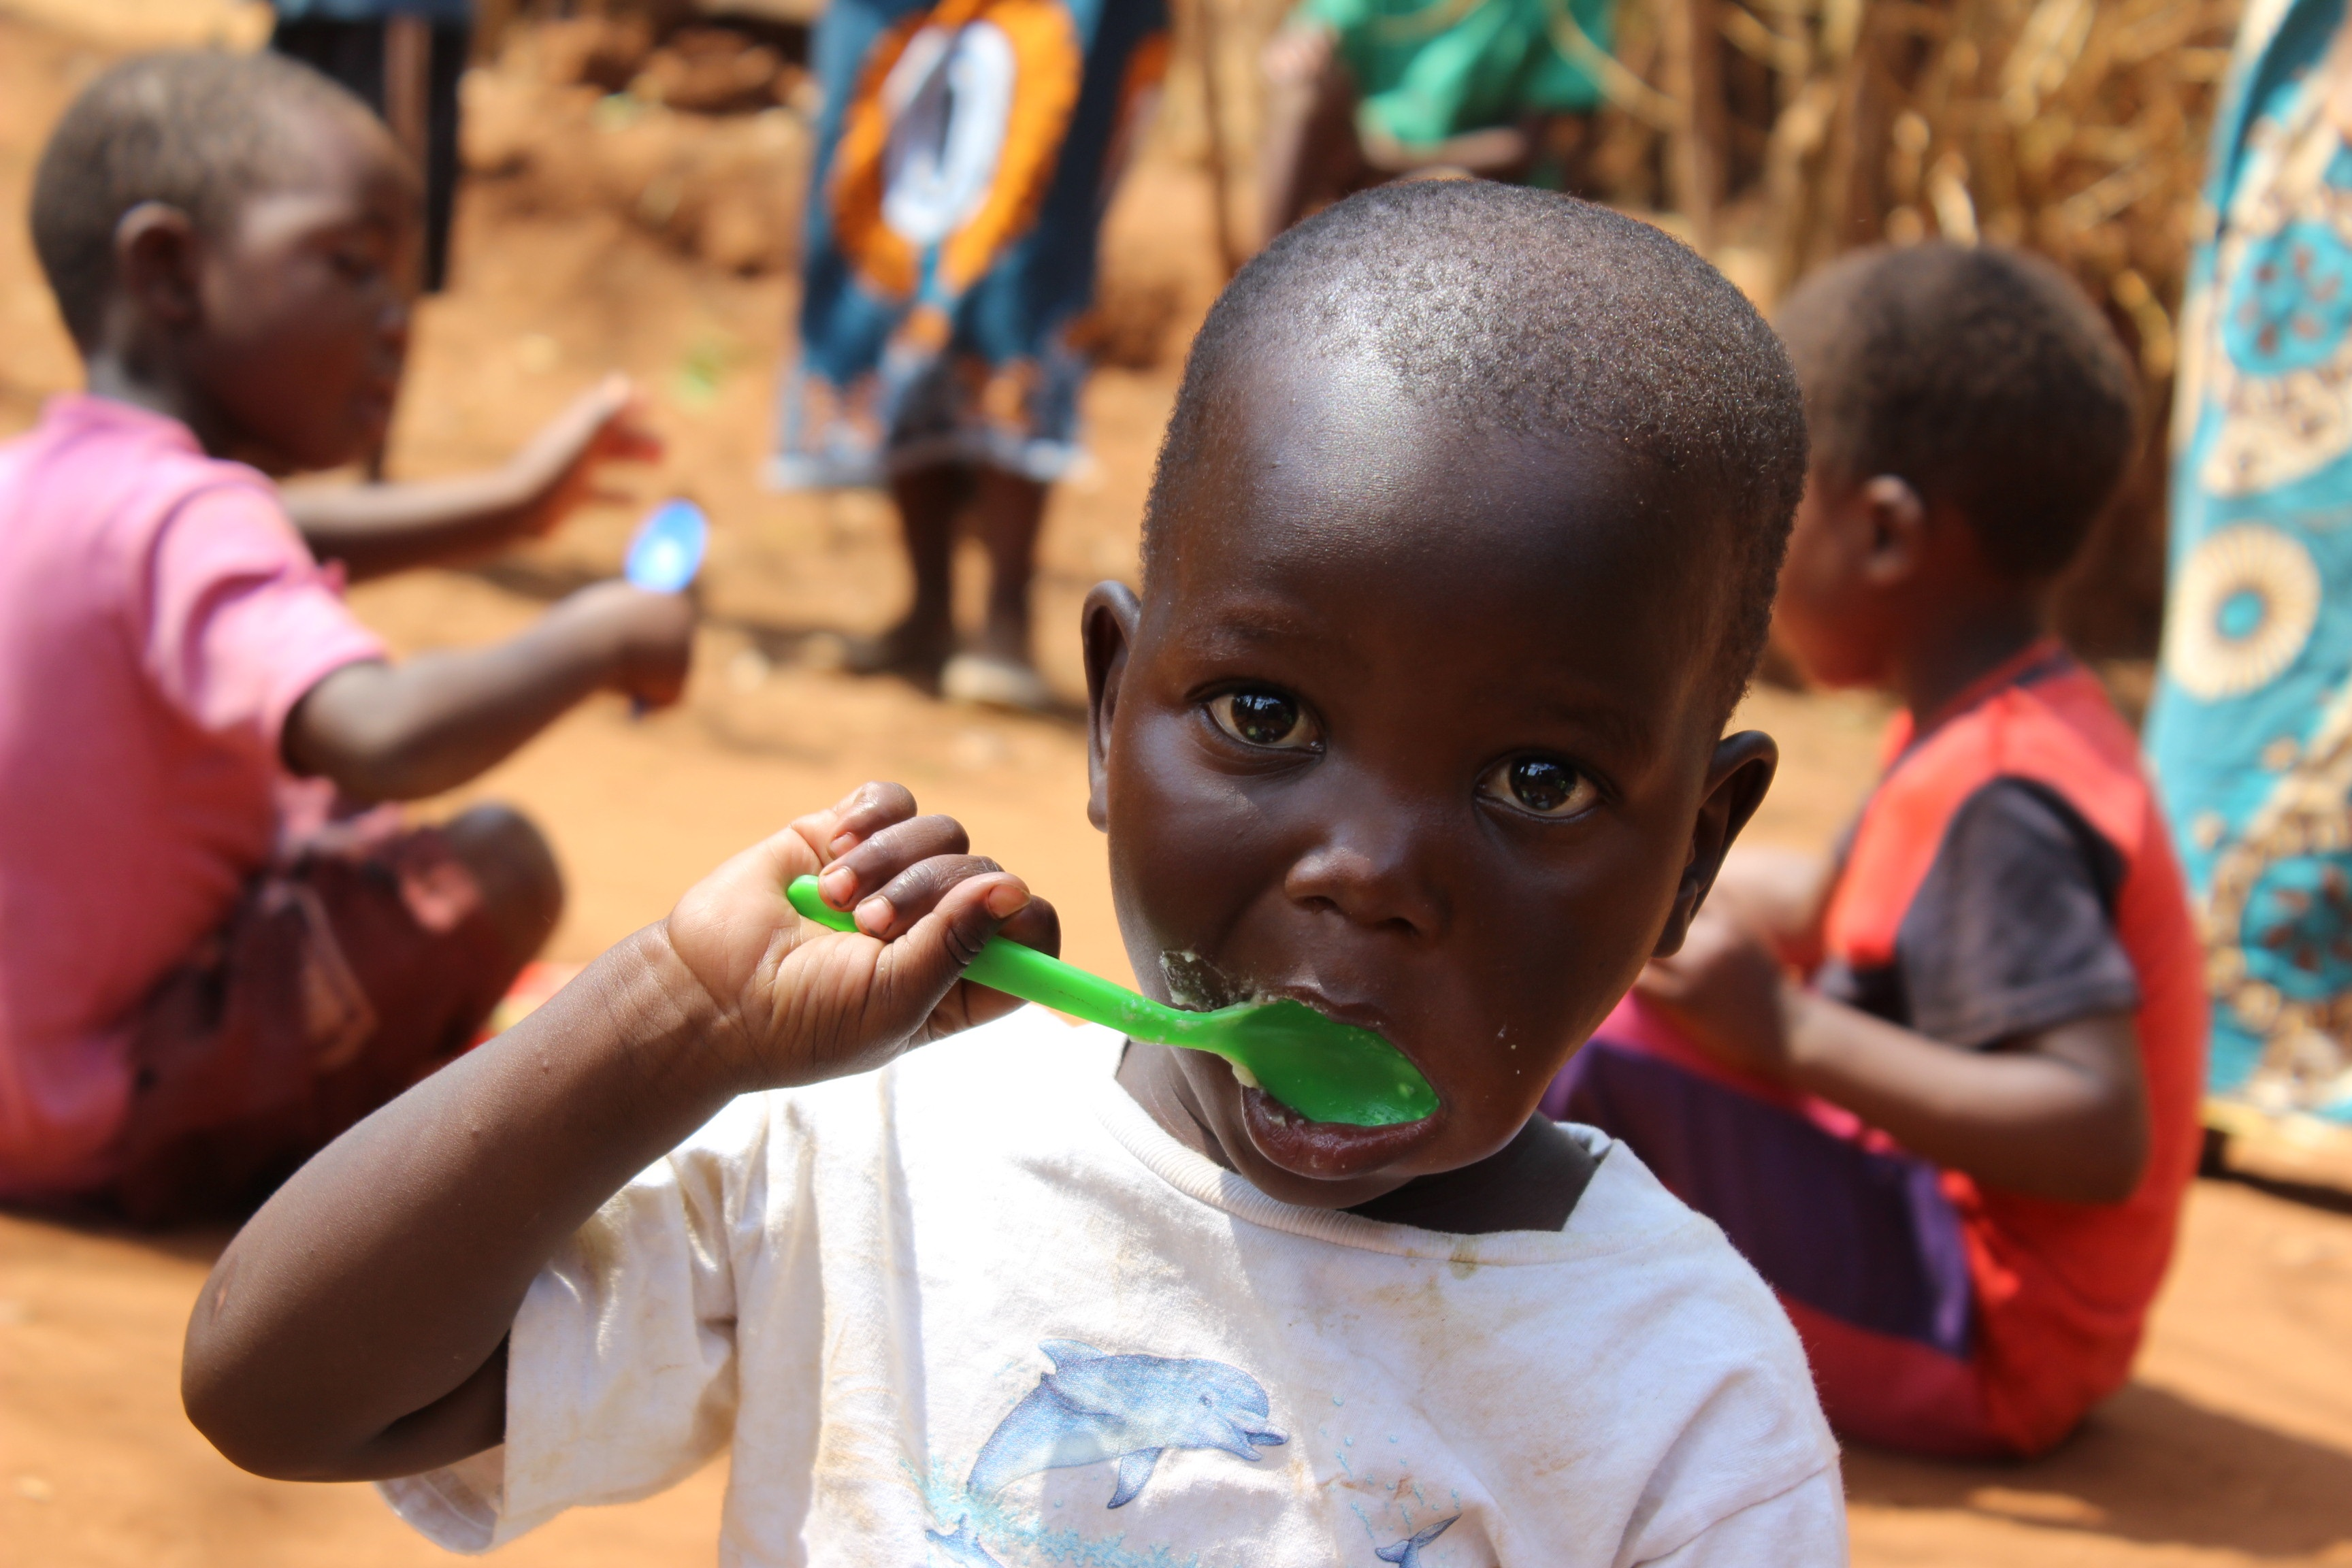 According to a recent Cost of Hunger in Africa Malawi report, 23 percent of all child mortality cases in Malawi are associated with undernutrition.